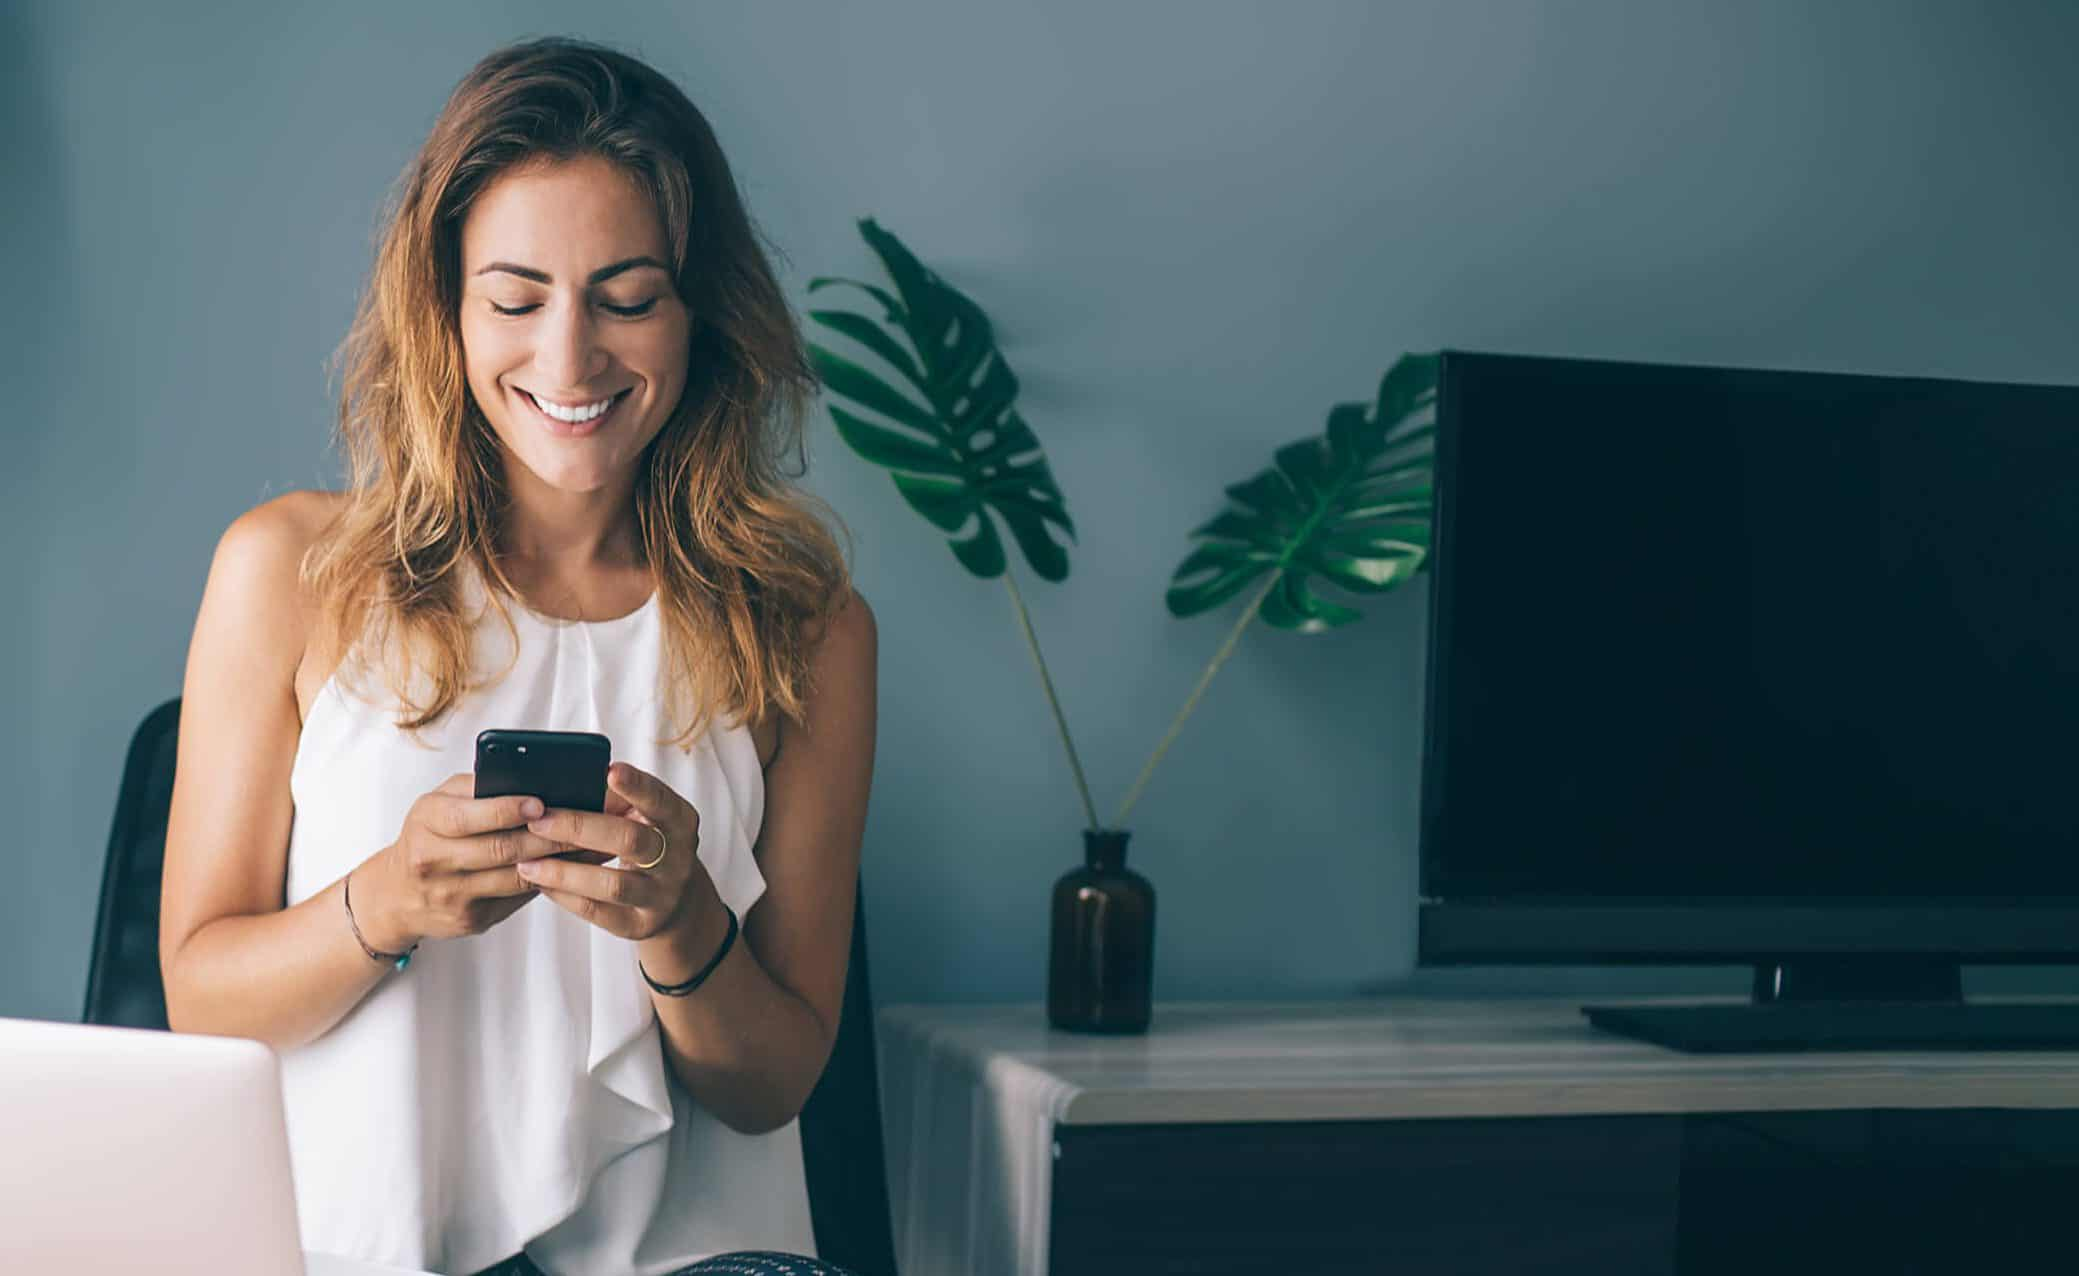 Woman smiling while using her iPhone at home